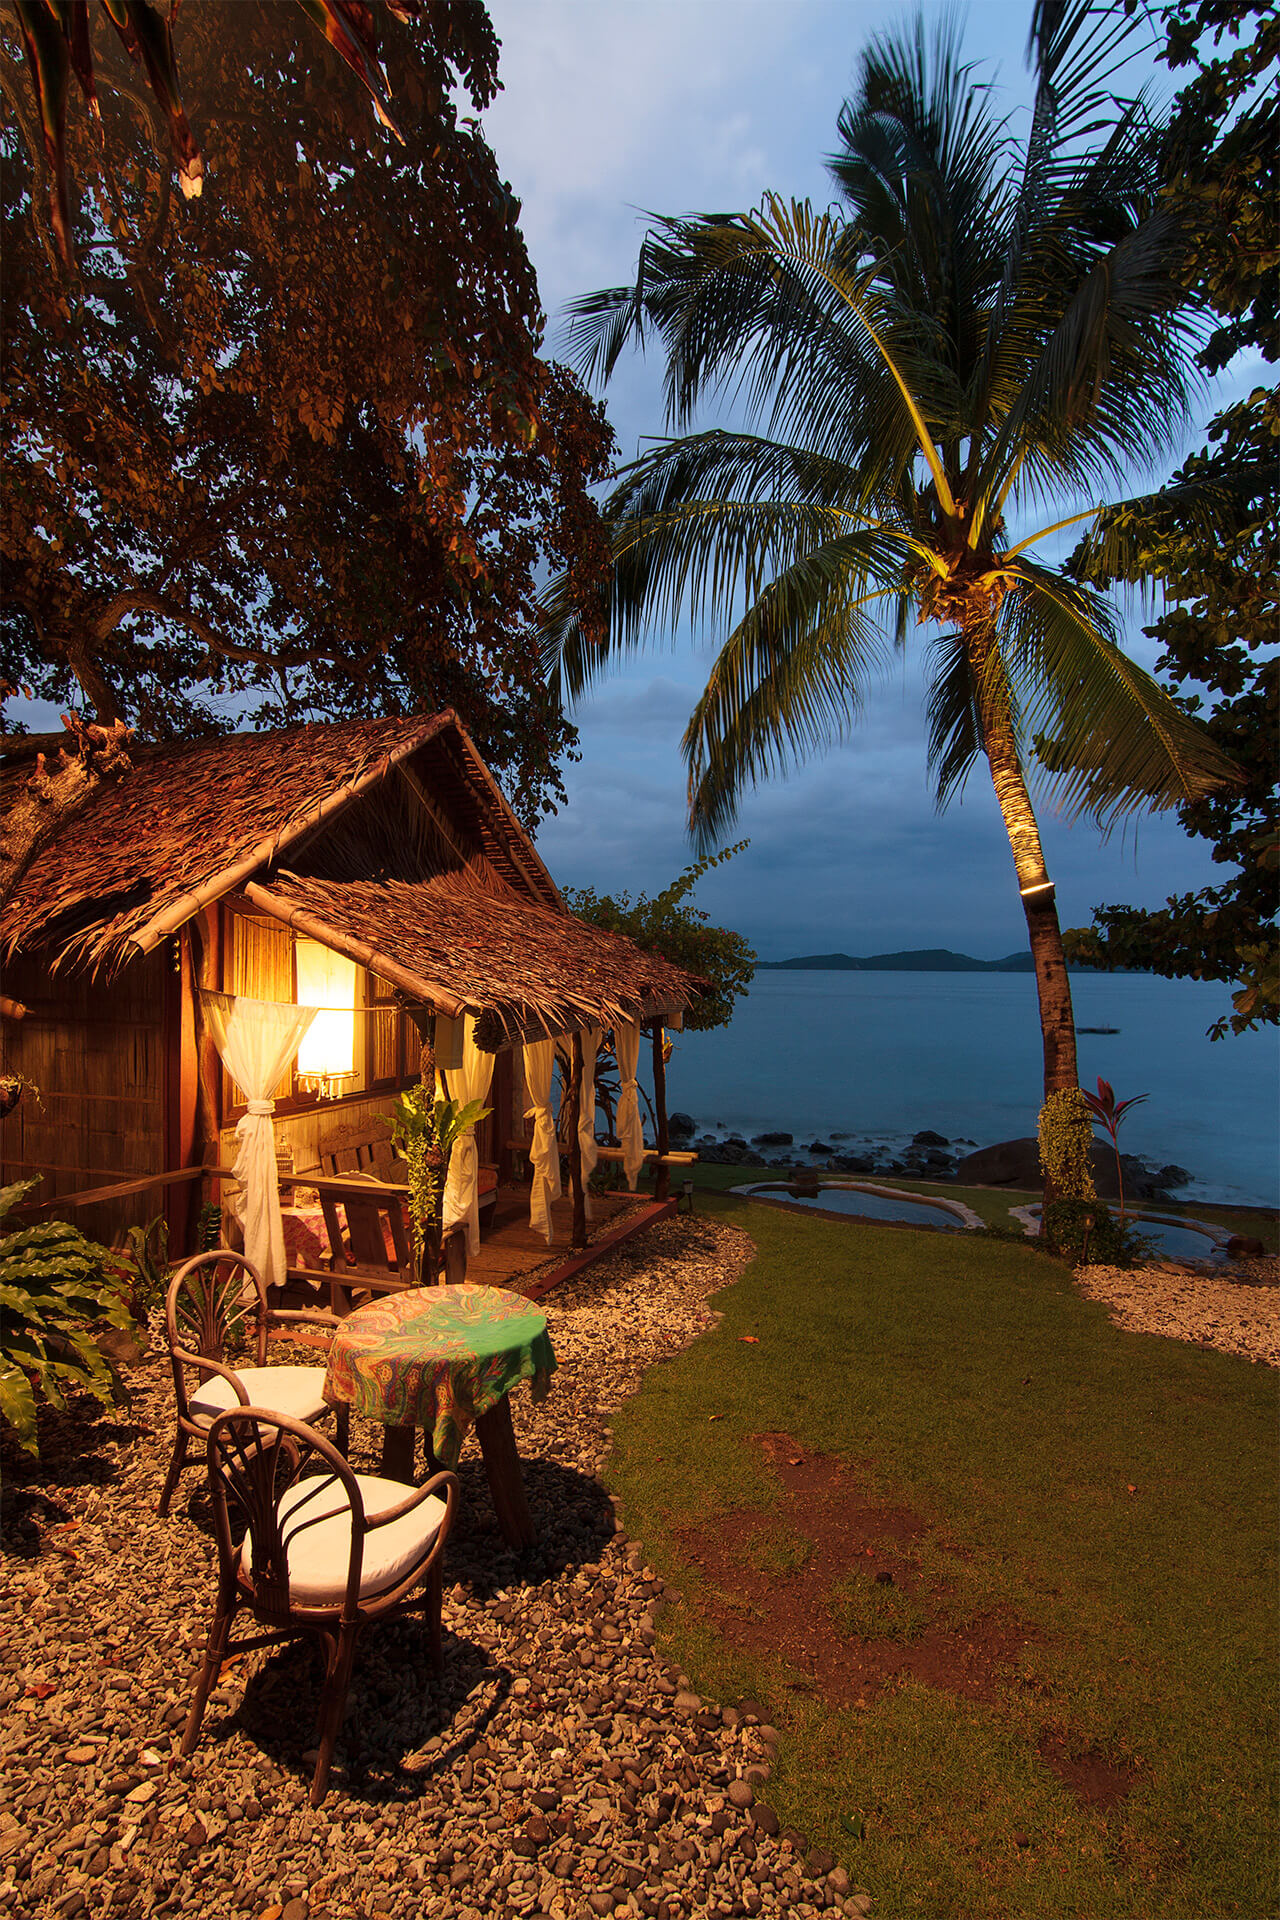 A villa in Lilom Resort overlooking the beach at dusk